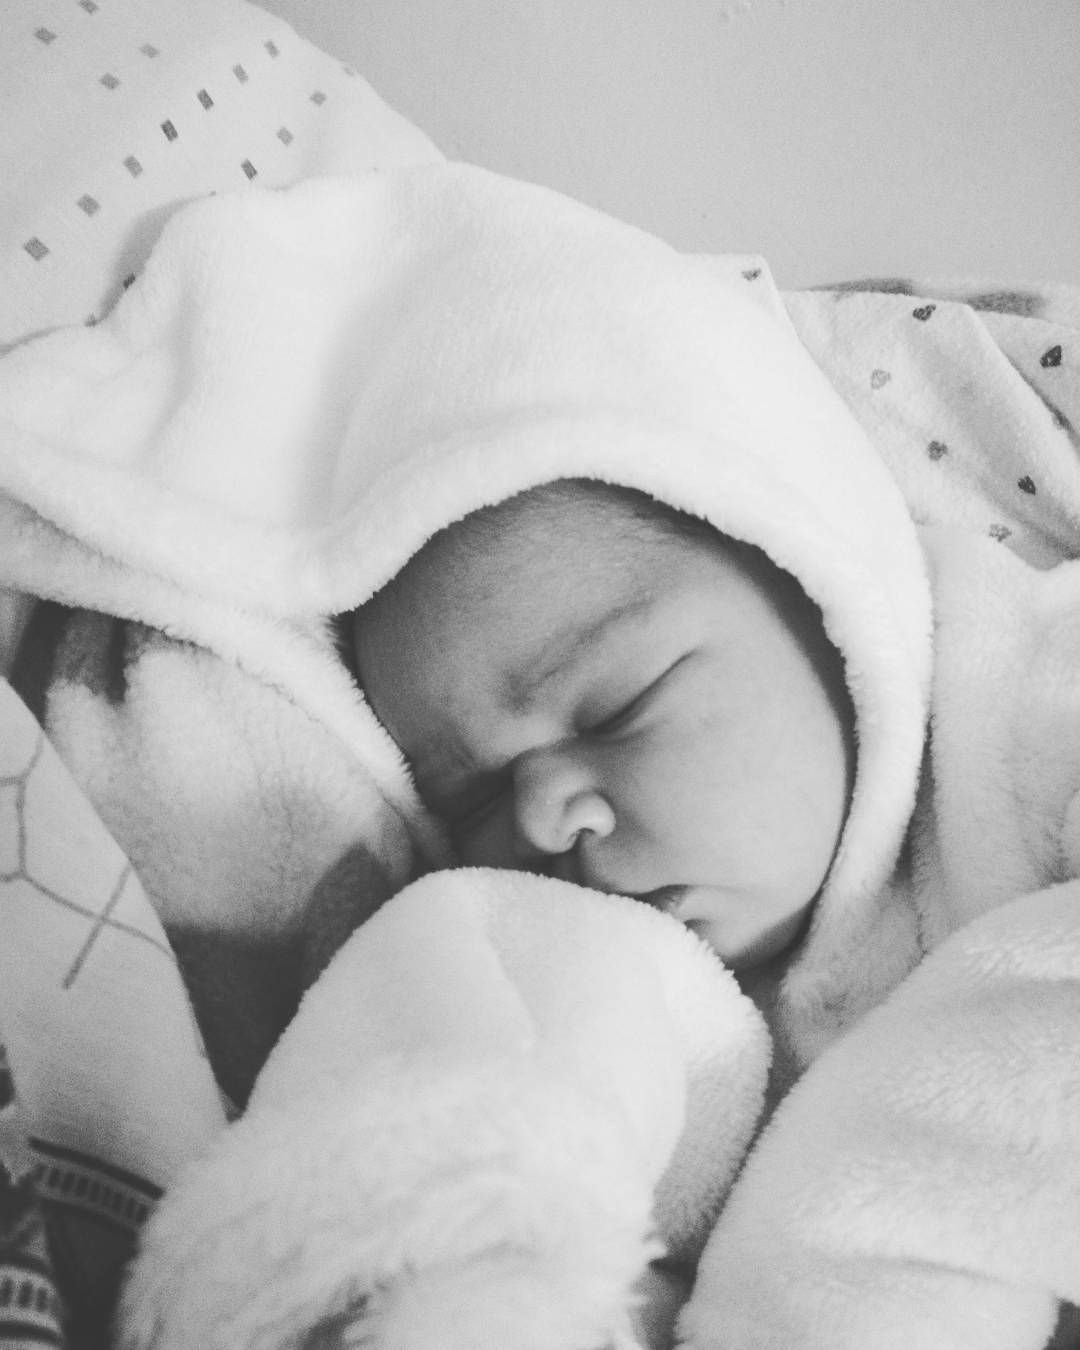 Madtraxx and his wife welcome healthy baby girl